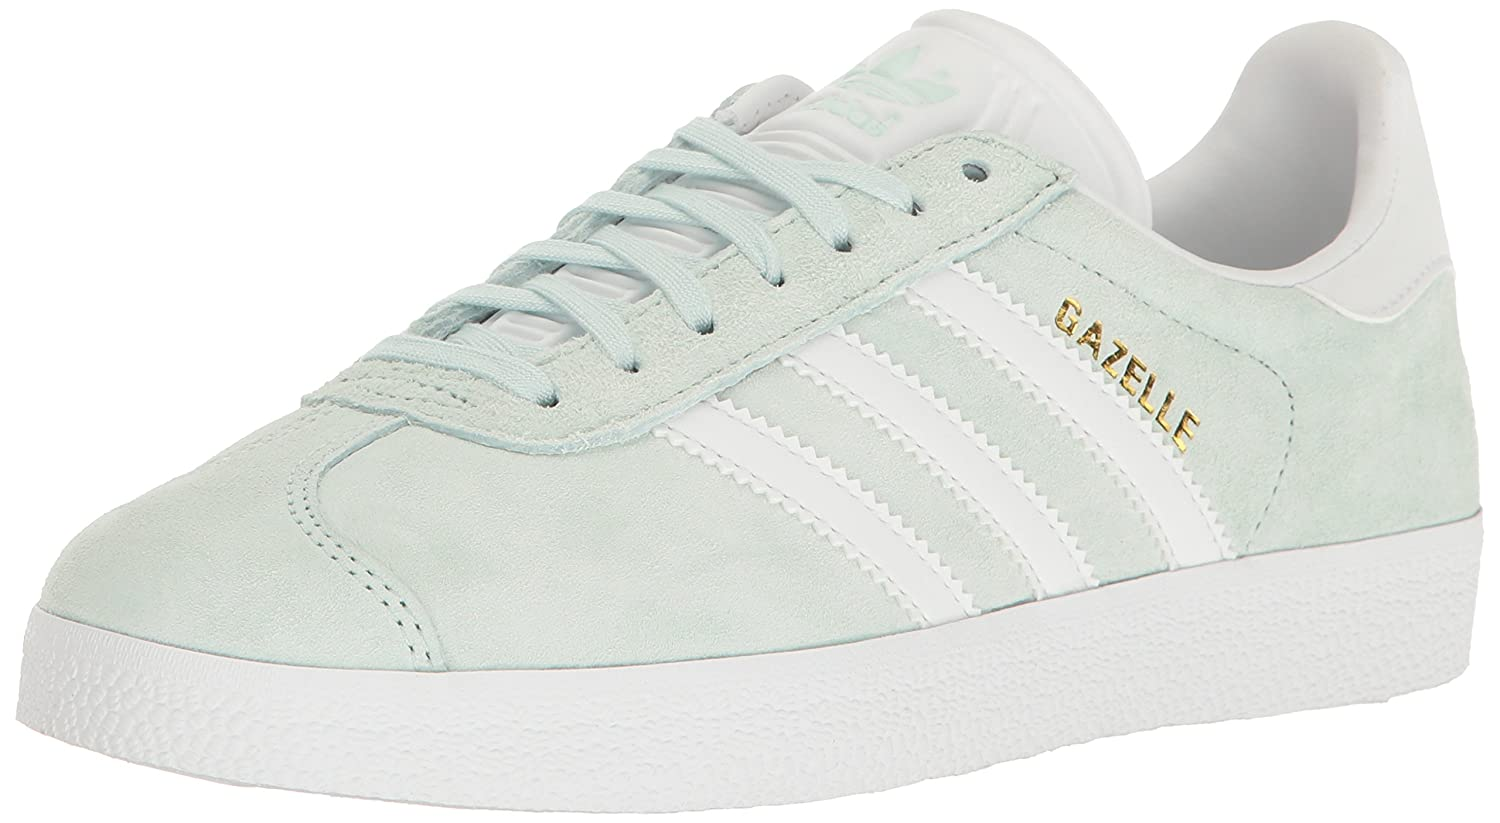 adidas Originals Gazelle Sneakers B01N2U0N8J 8 M US|Ice Mint/White/Metallic Gold